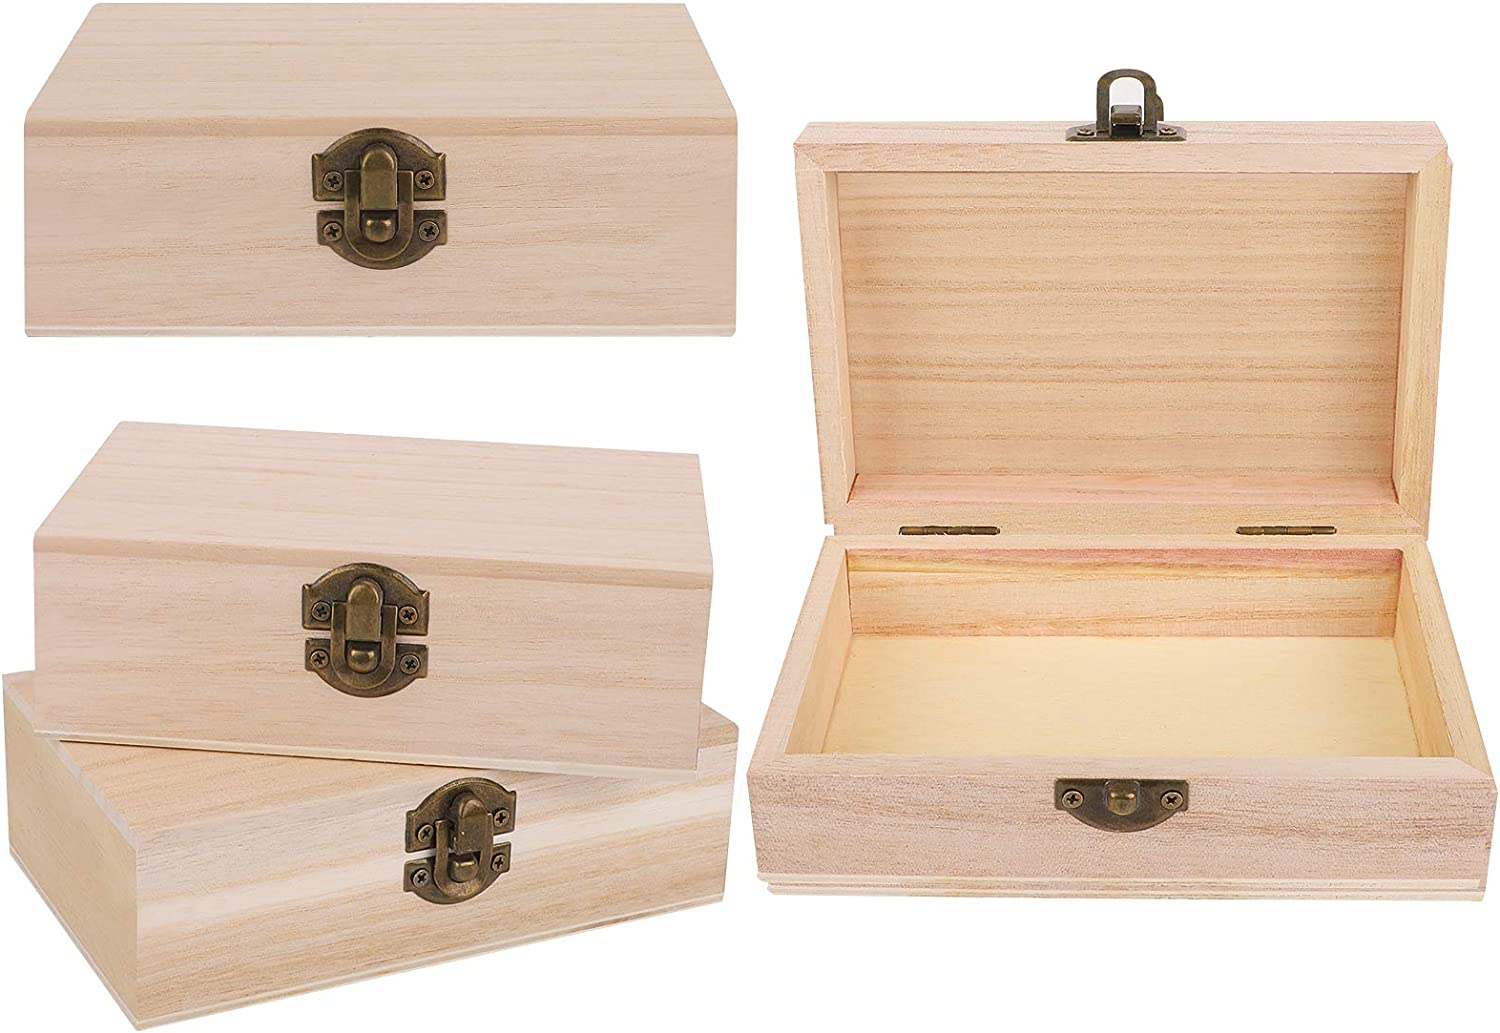 ADXCO 4 Pieces Unfinished Pine Wood Box with Hinged Lid Treasure Boxes with Locking Clasp Treasure Chest Decorate Wooden Boxes for DIY Crafting Gift Storage Box, 5.9 x 3.9 x 2 Inches